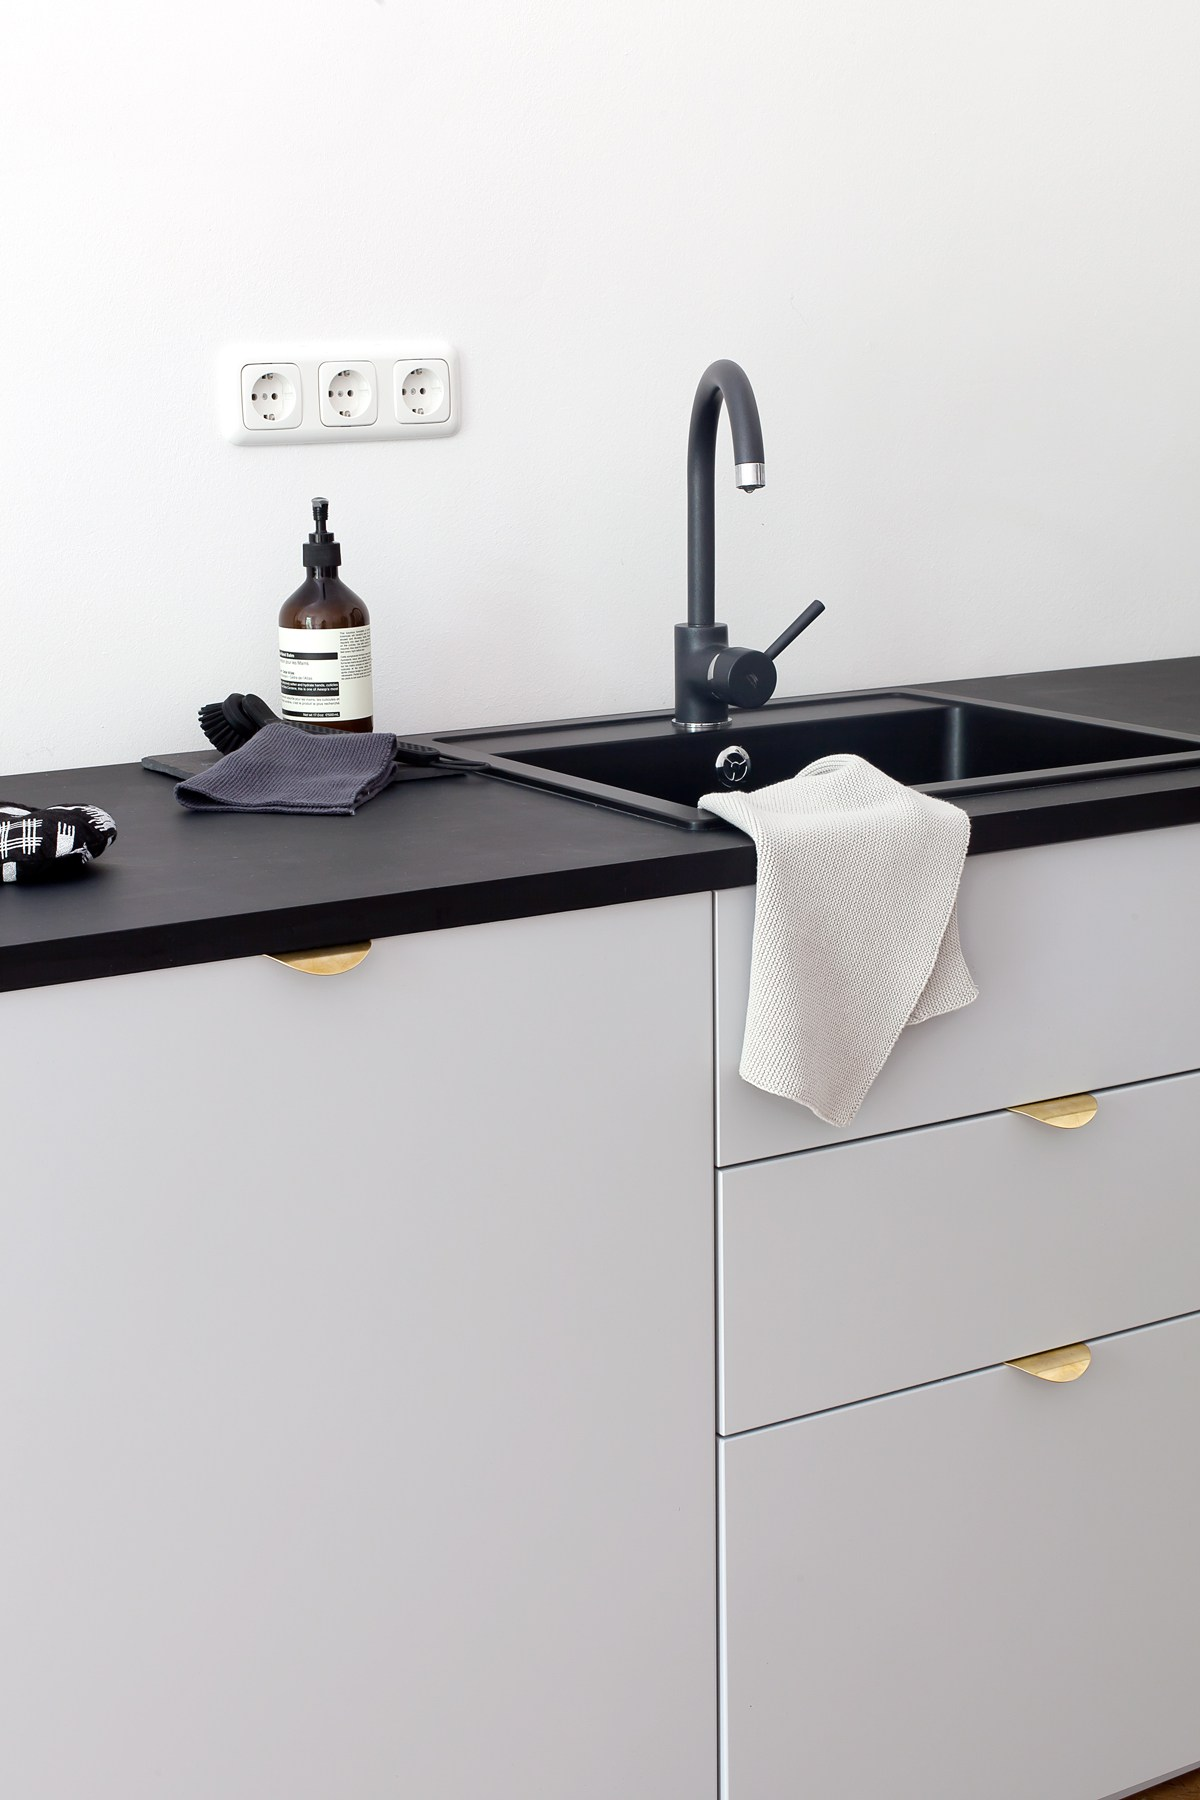 Ikea Kitchen Design Inspiring Kitchens You Won T Believe Are Ikea Apartment Therapy